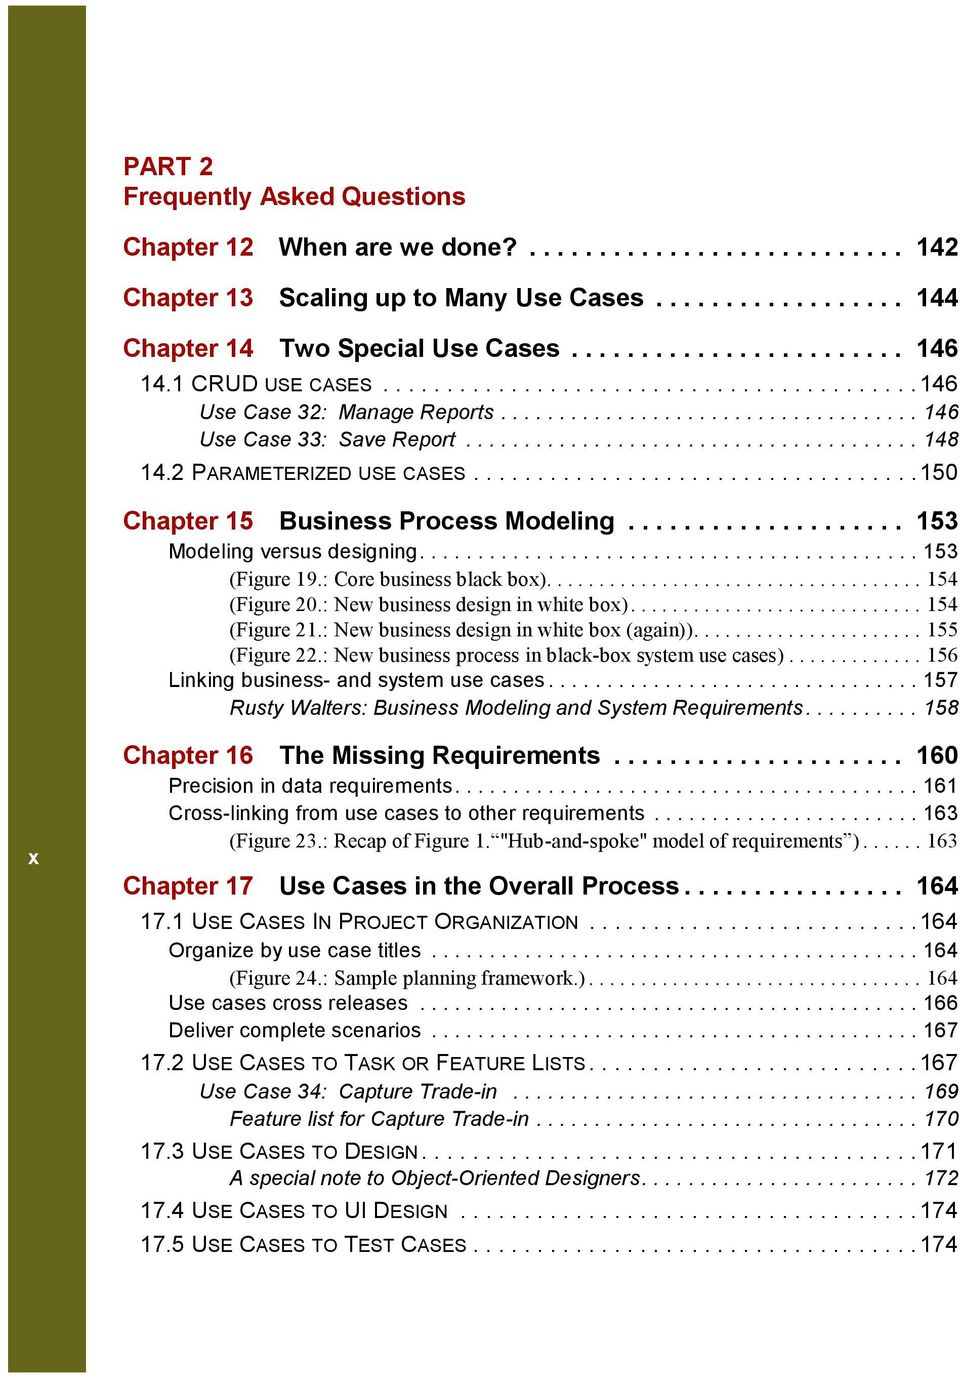 2 PARAMETERIZED USE CASES...................................150 Chapter 15 Business Process Modeling.................... 153 Modeling versus designing........................................... 153 (Figure 19.